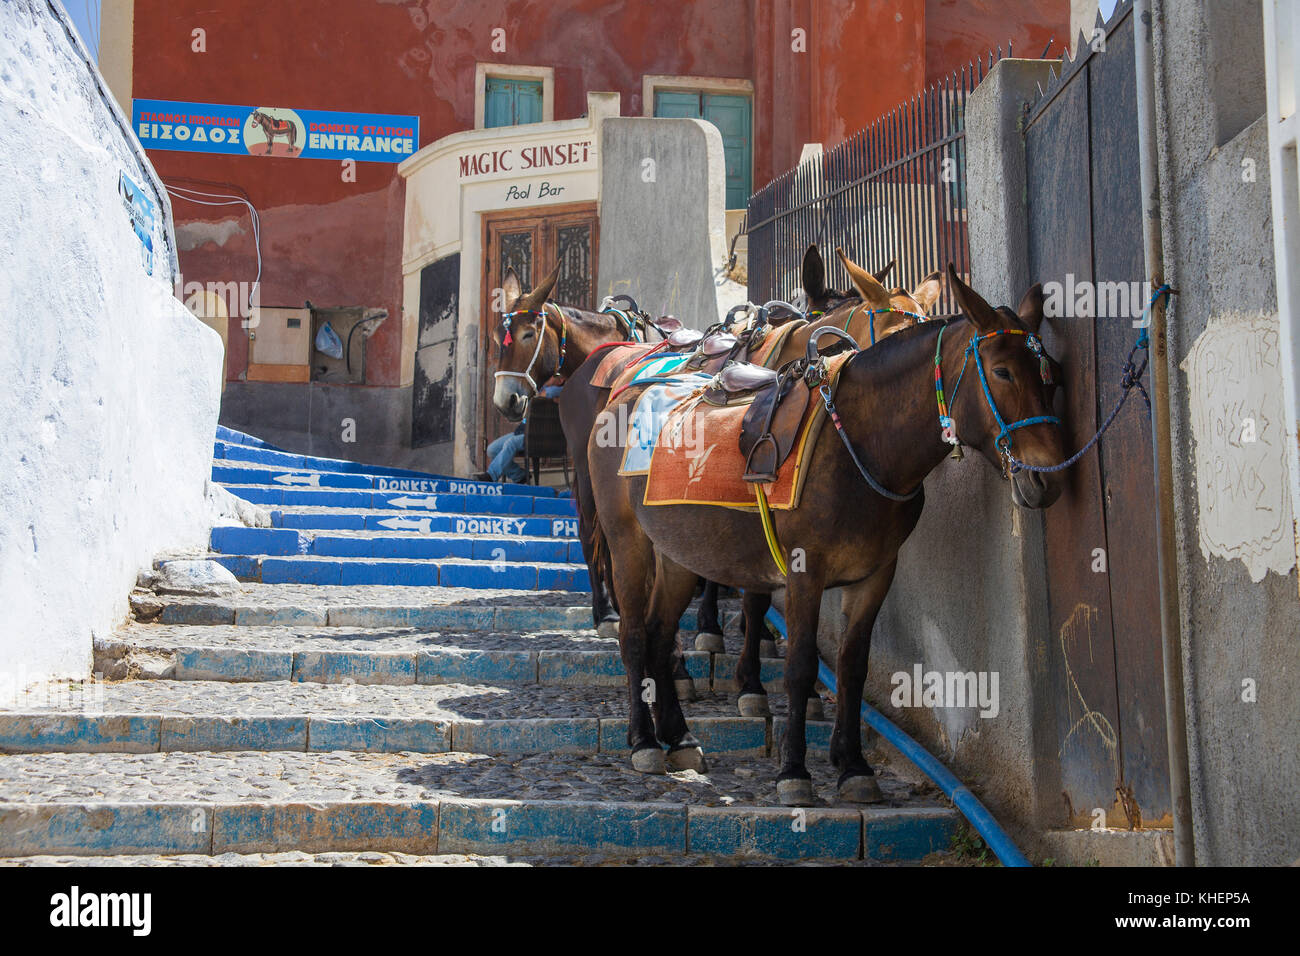 Donkeys waiting at shadow mural for tourists, tourist transportation down to the old harbour of Thira, Santorin - Stock Image